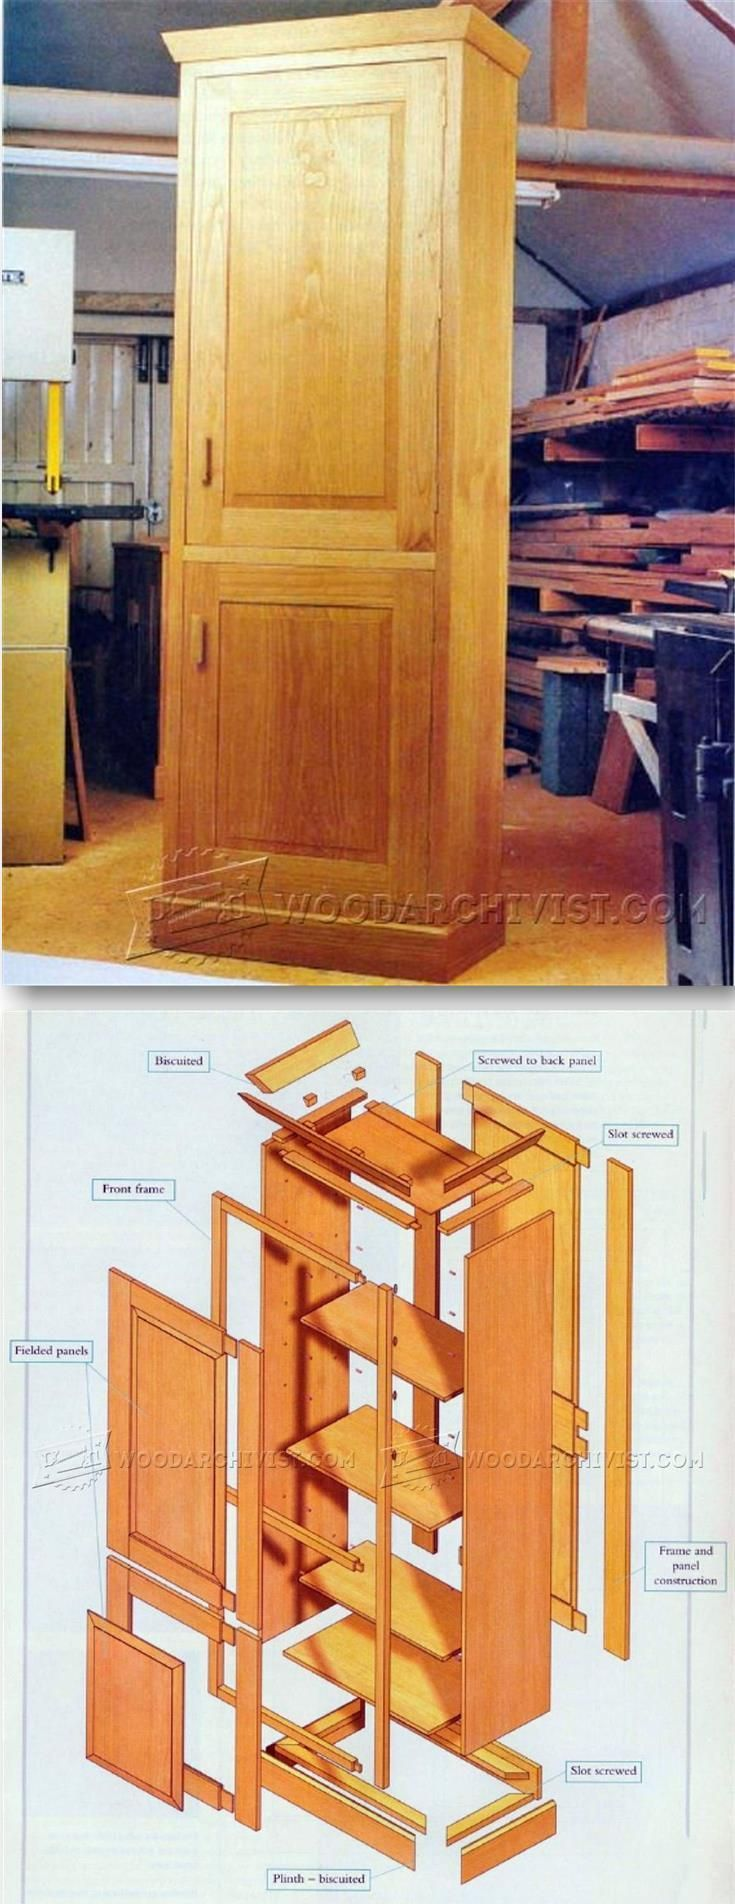 Best 25 Cabinet Plans ideas only on Pinterest